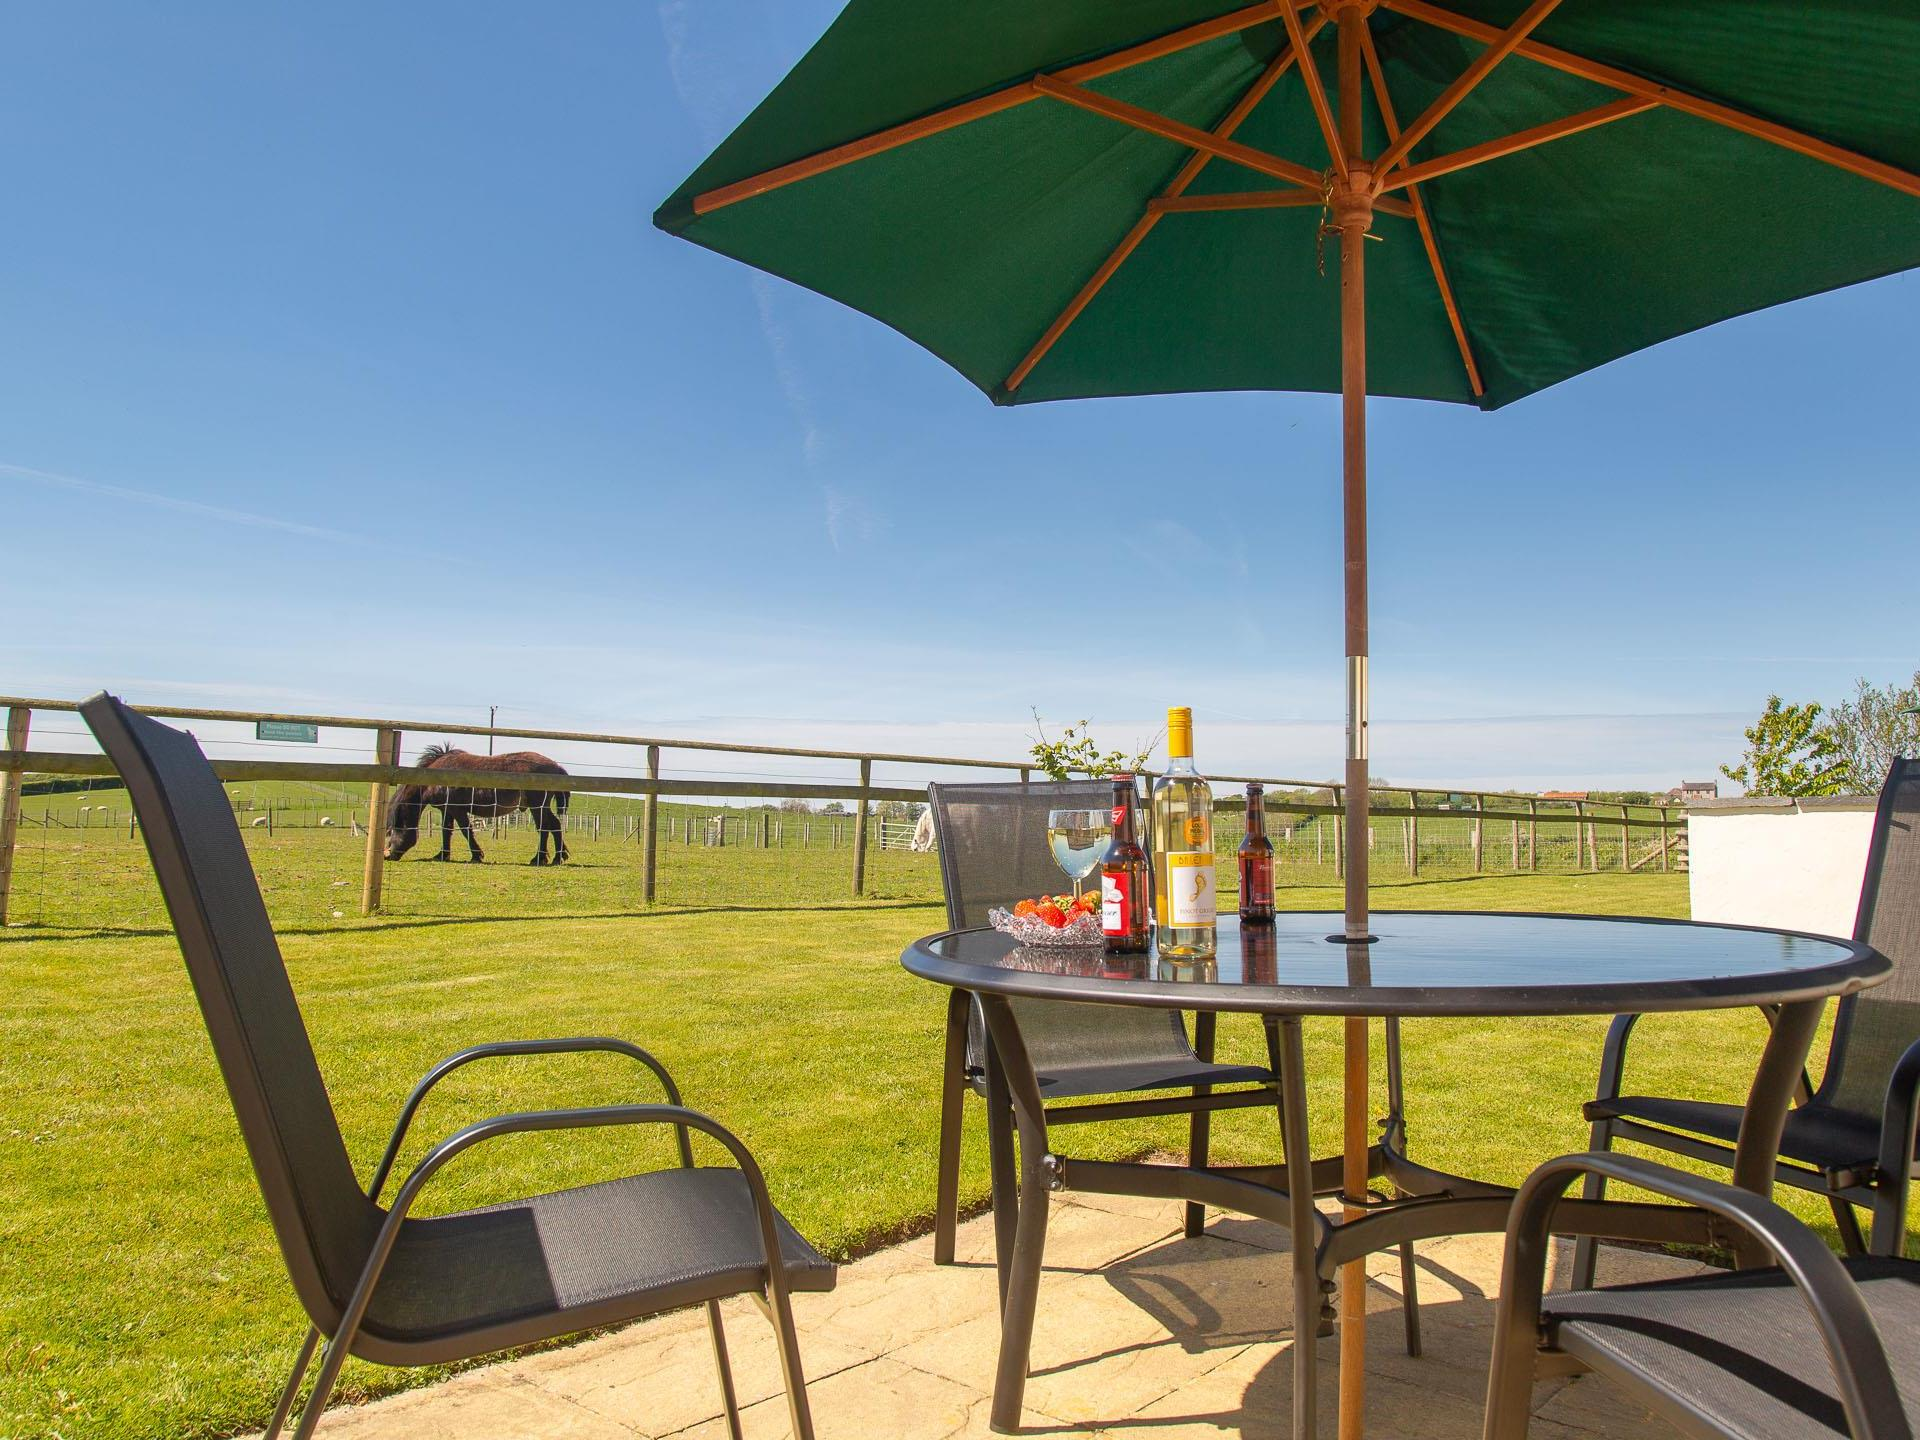 Enjoy the Anglesey sunshine on your patio